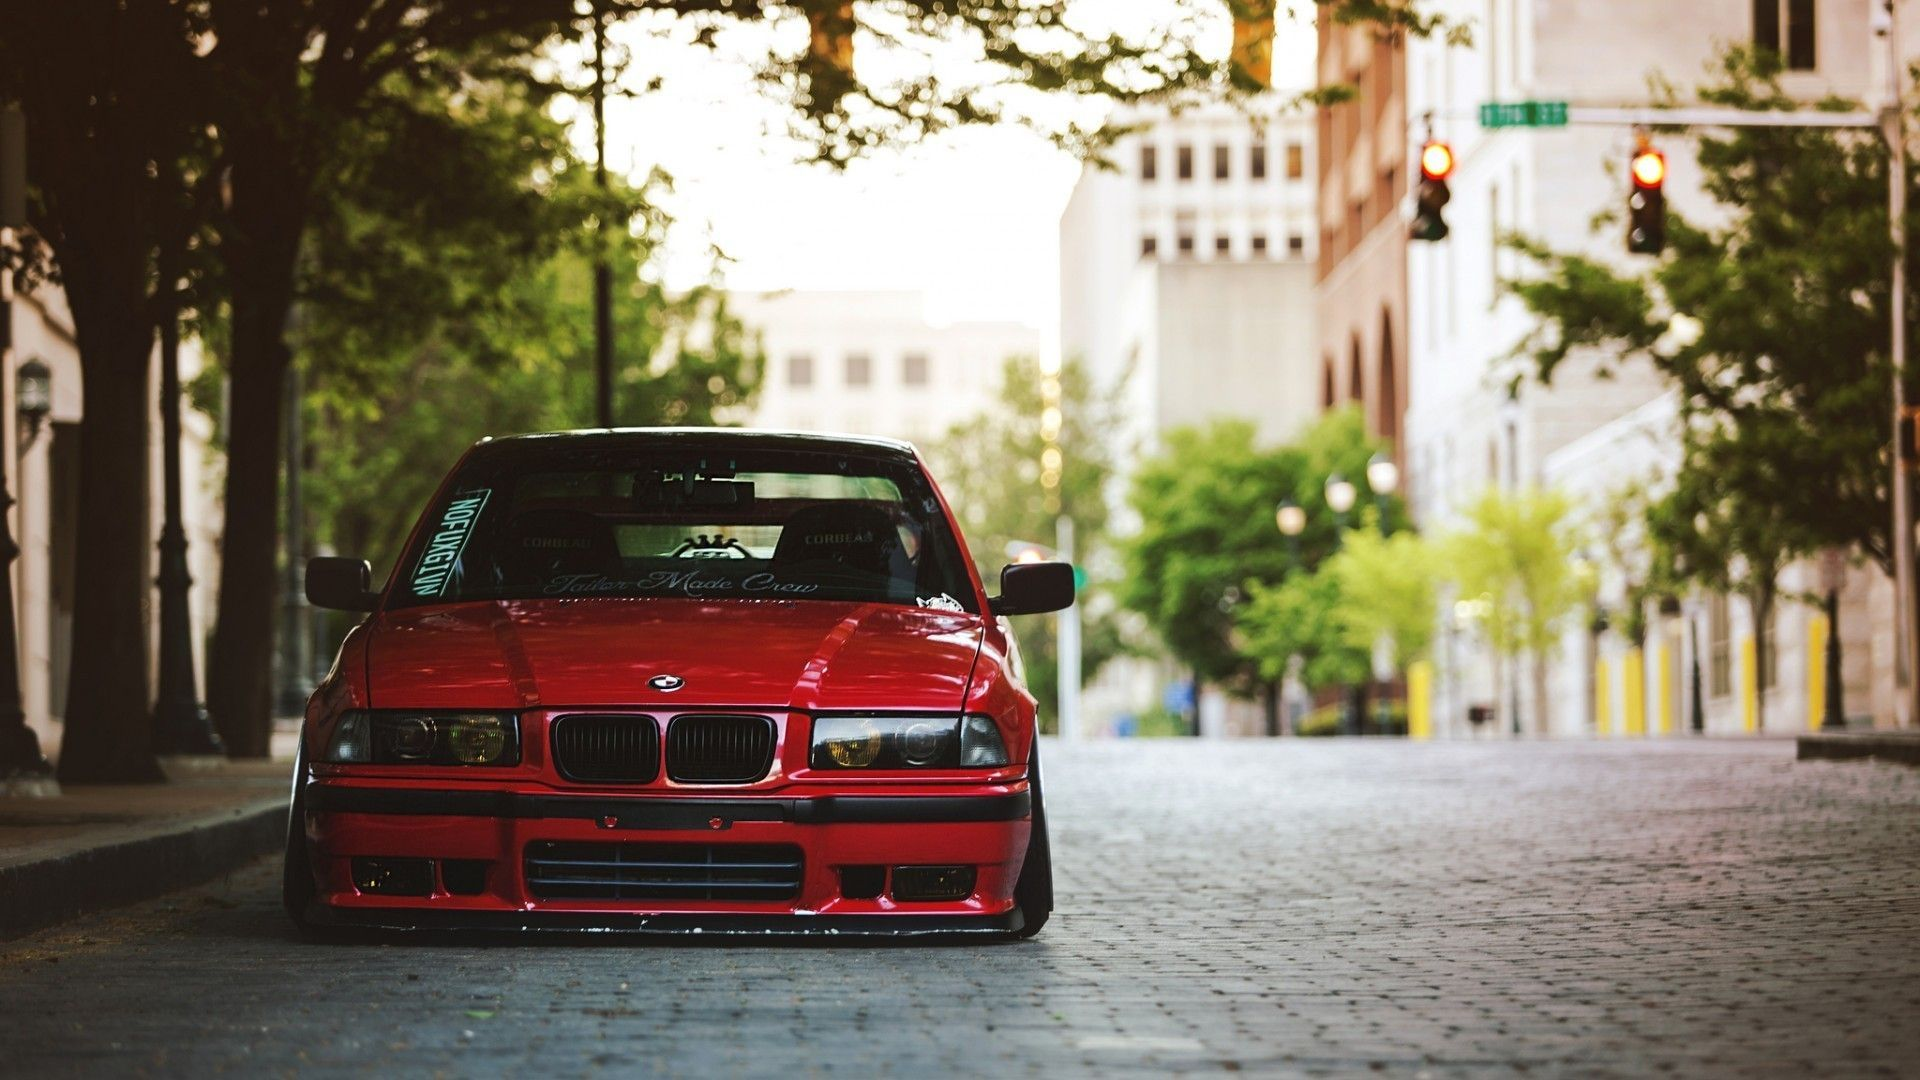 Bmw E36 Wallpaper Full HD